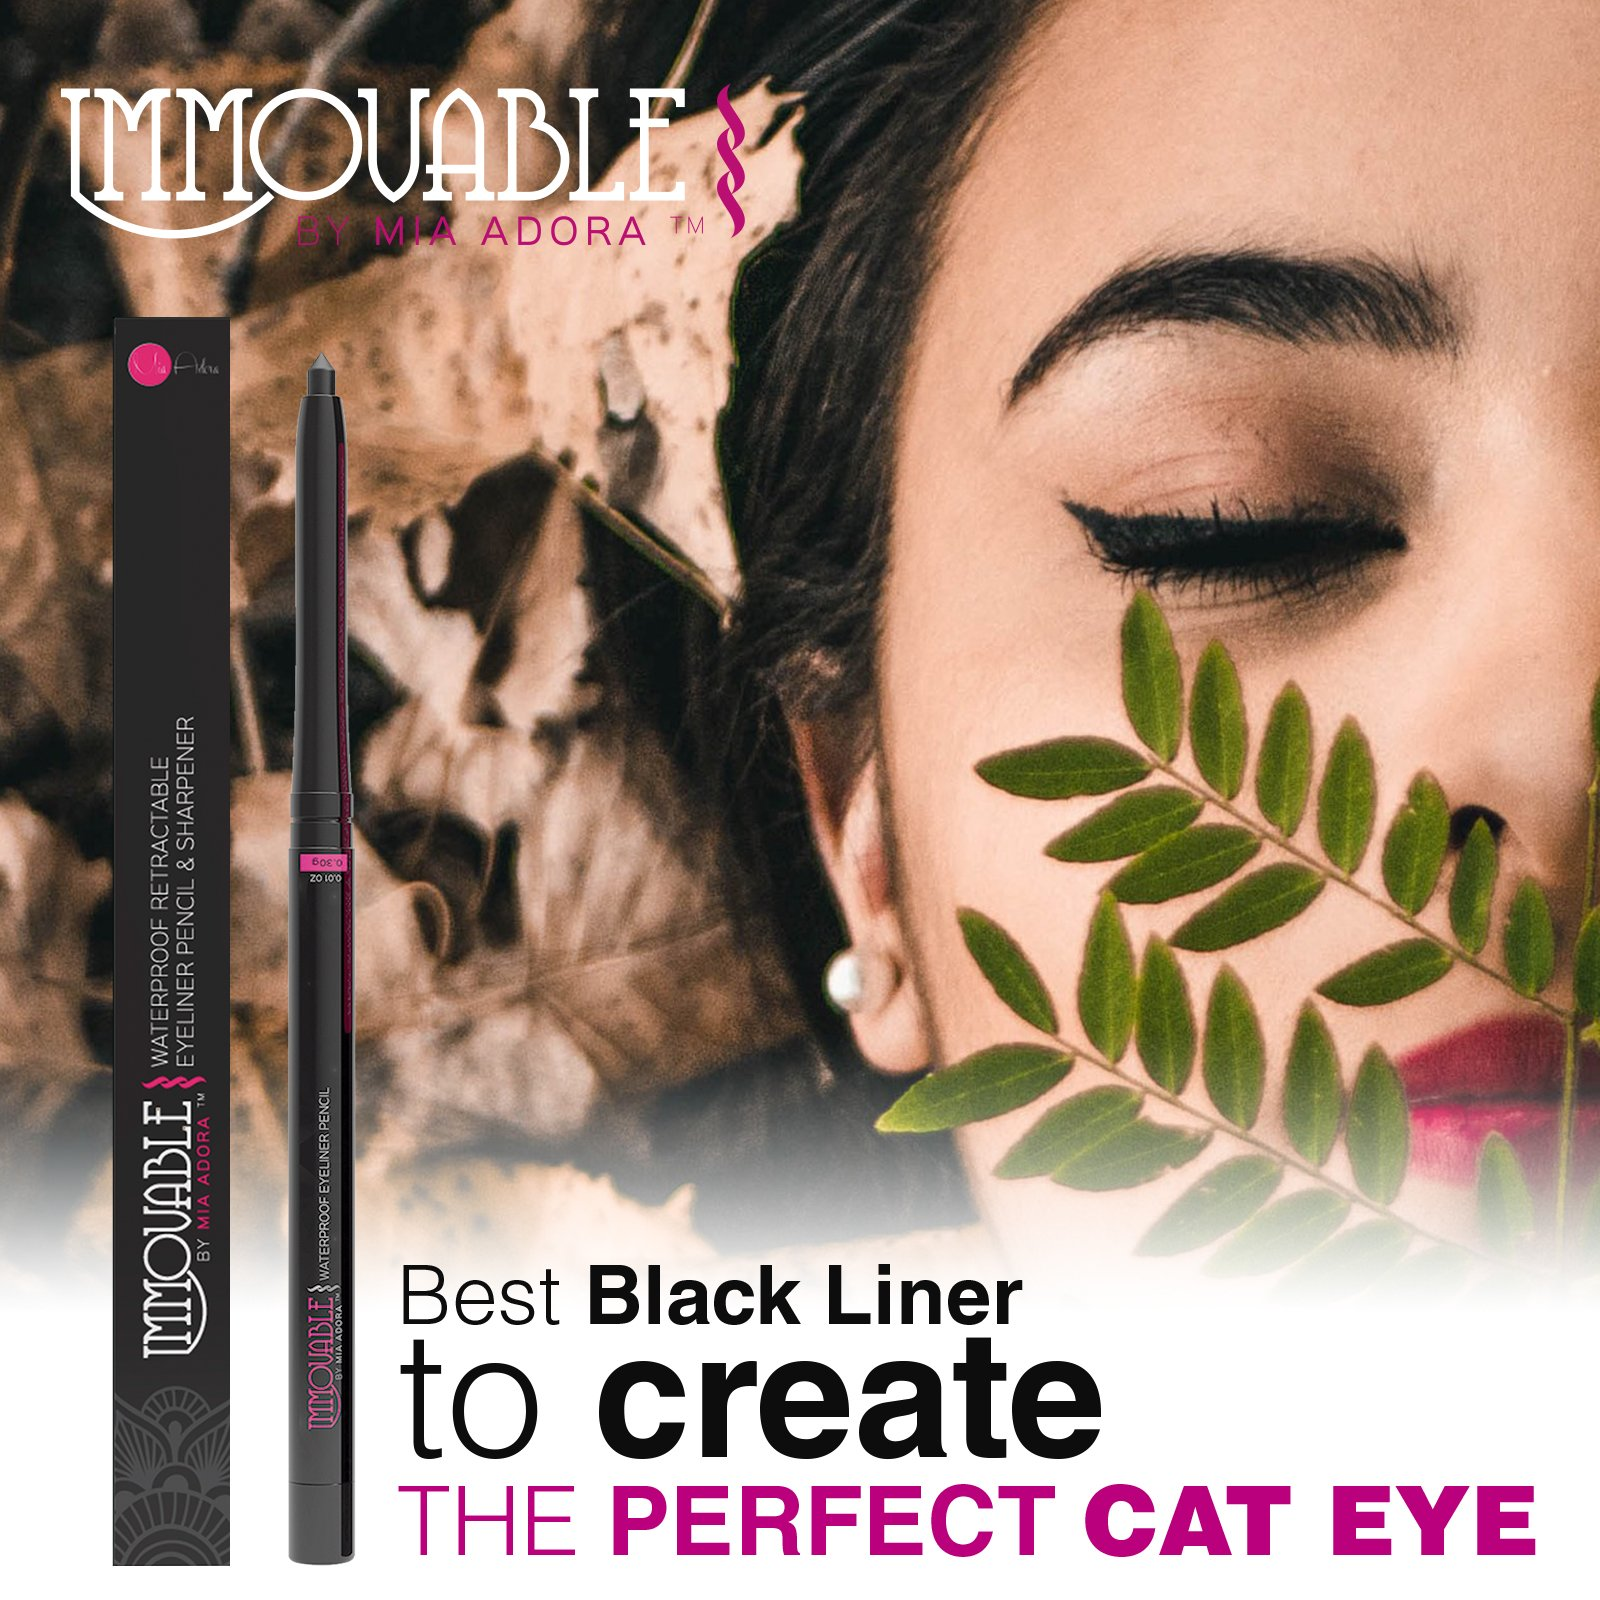 Best Black Waterproof Eyeliner Pencil with Sharpener - 12 Hour Wear - Easy to Use & Perfect Eye Liner for Your Cat Eyes & Waterline - Immovable by Mia Adora Makeup by MIA ADORA (Image #5)